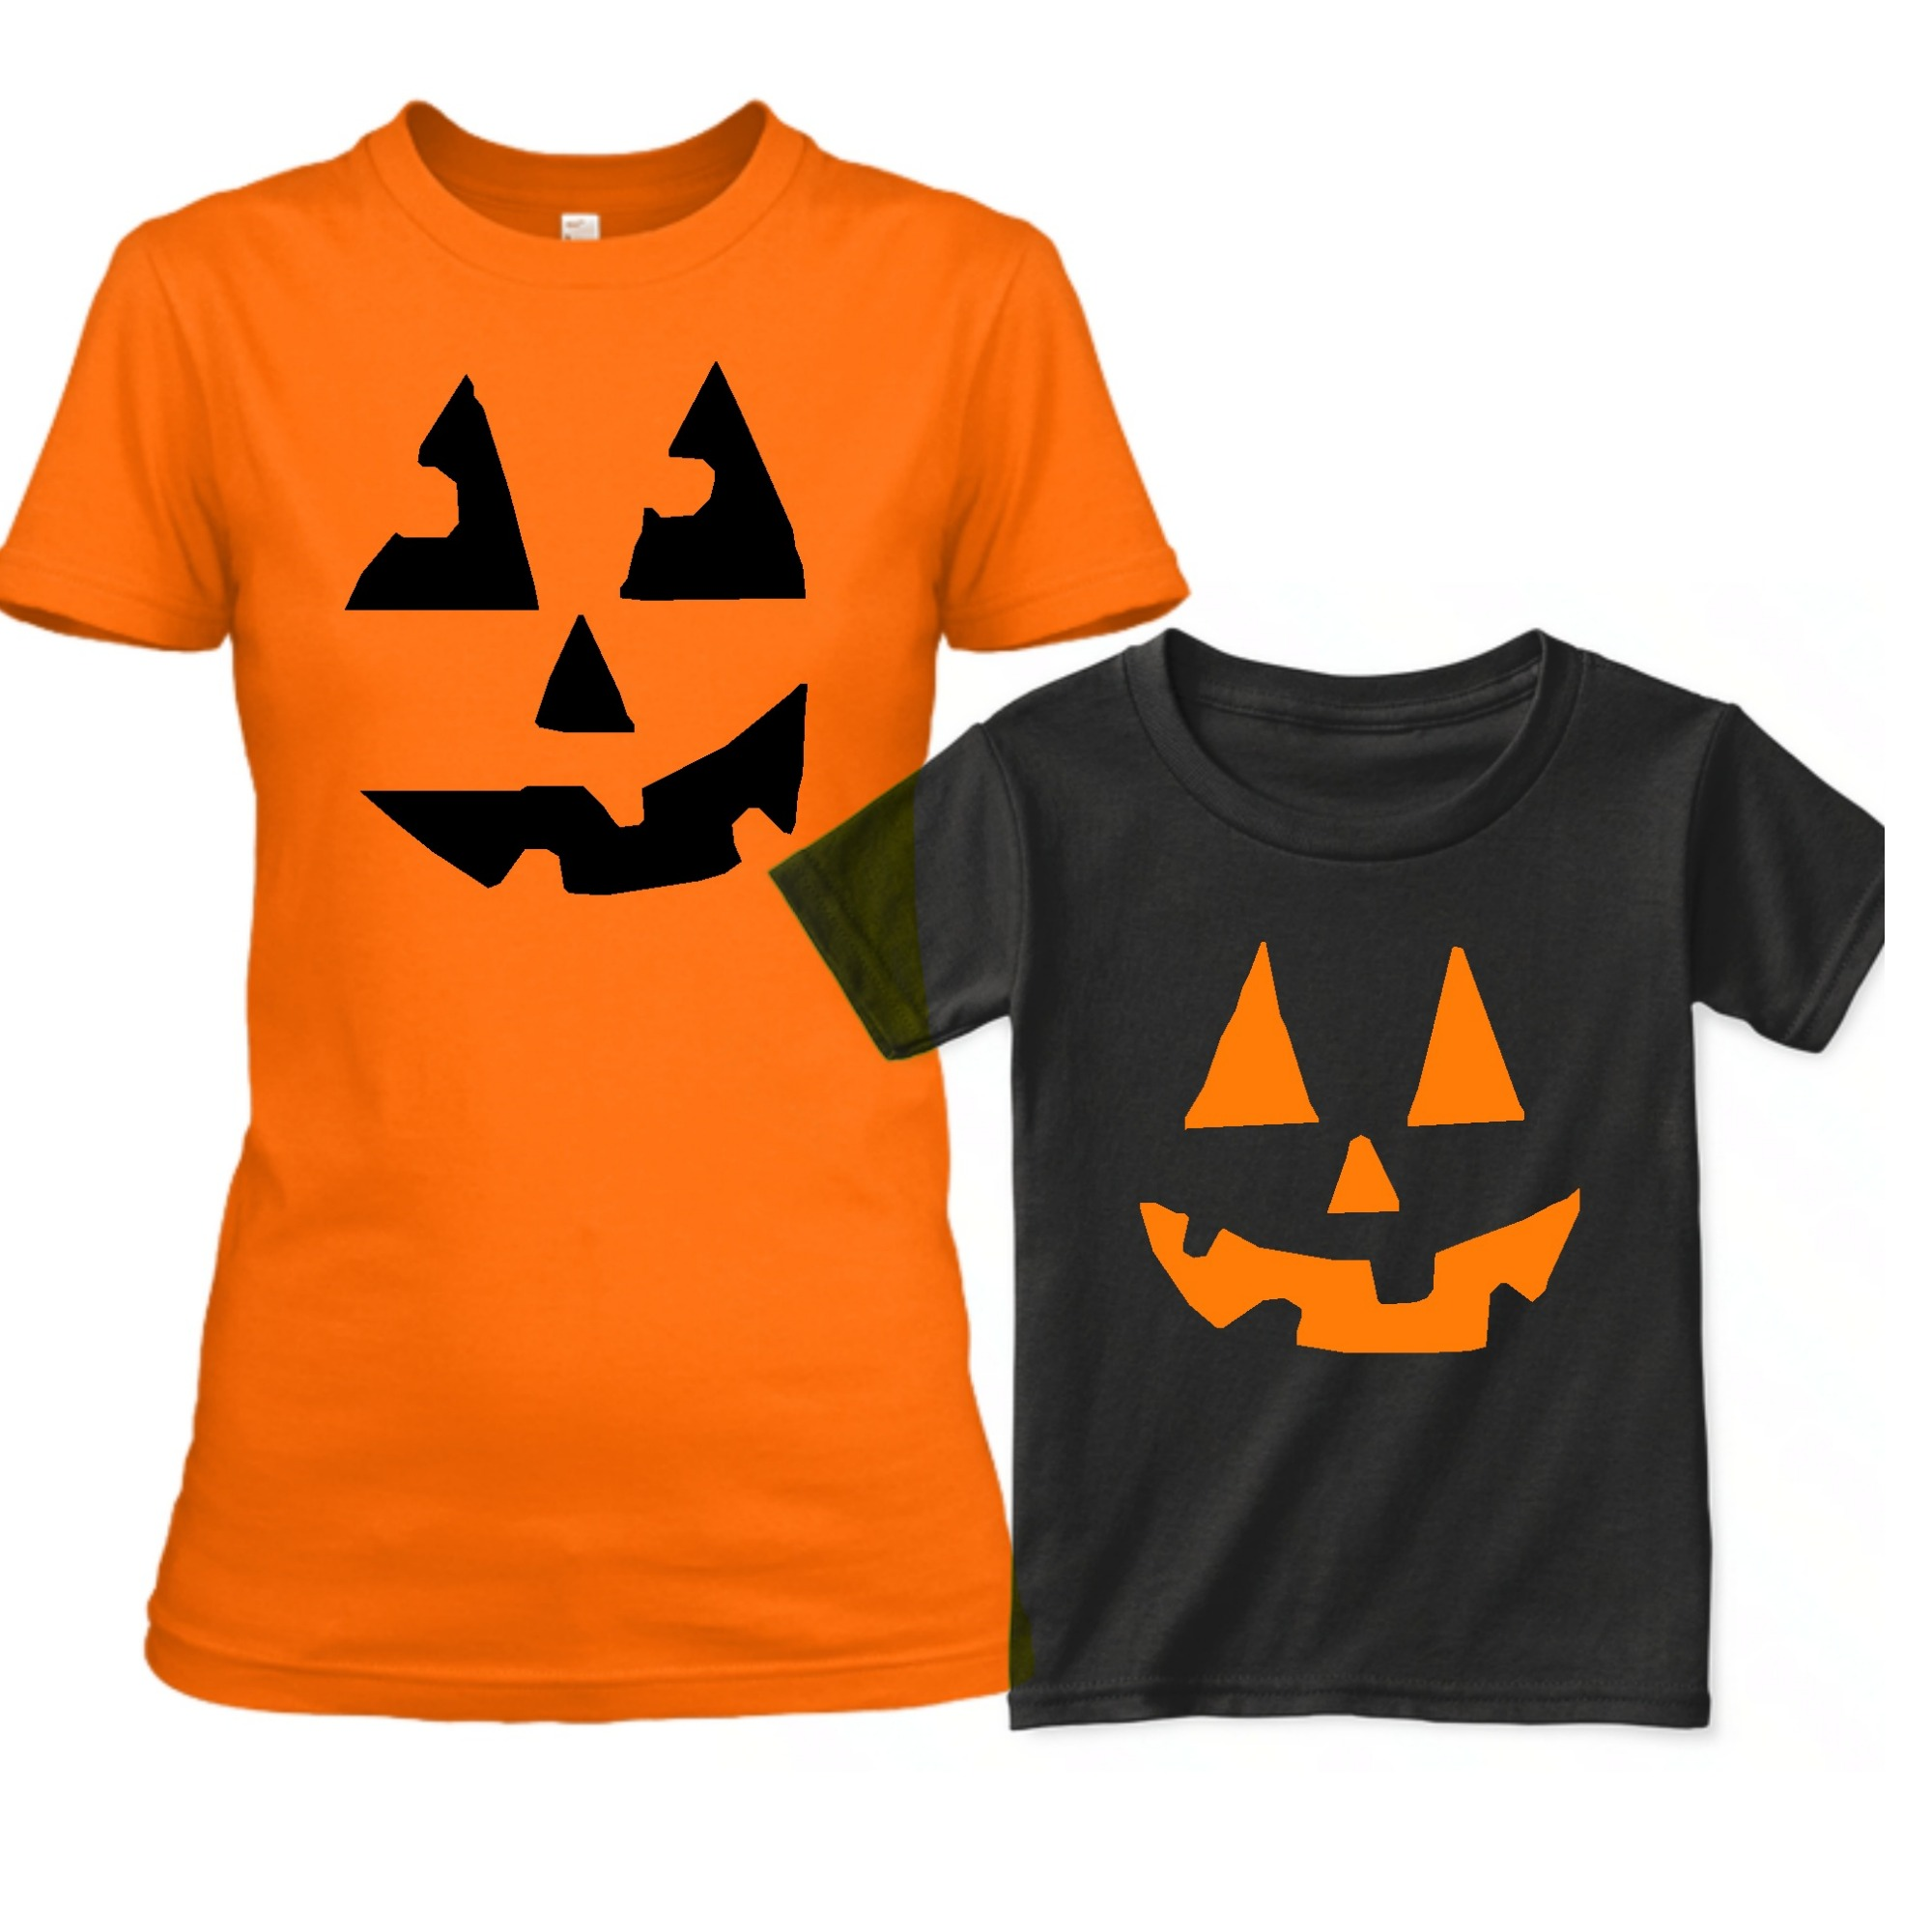 30c059e8e Matching Pumpkin Halloween Shirts on Storenvy